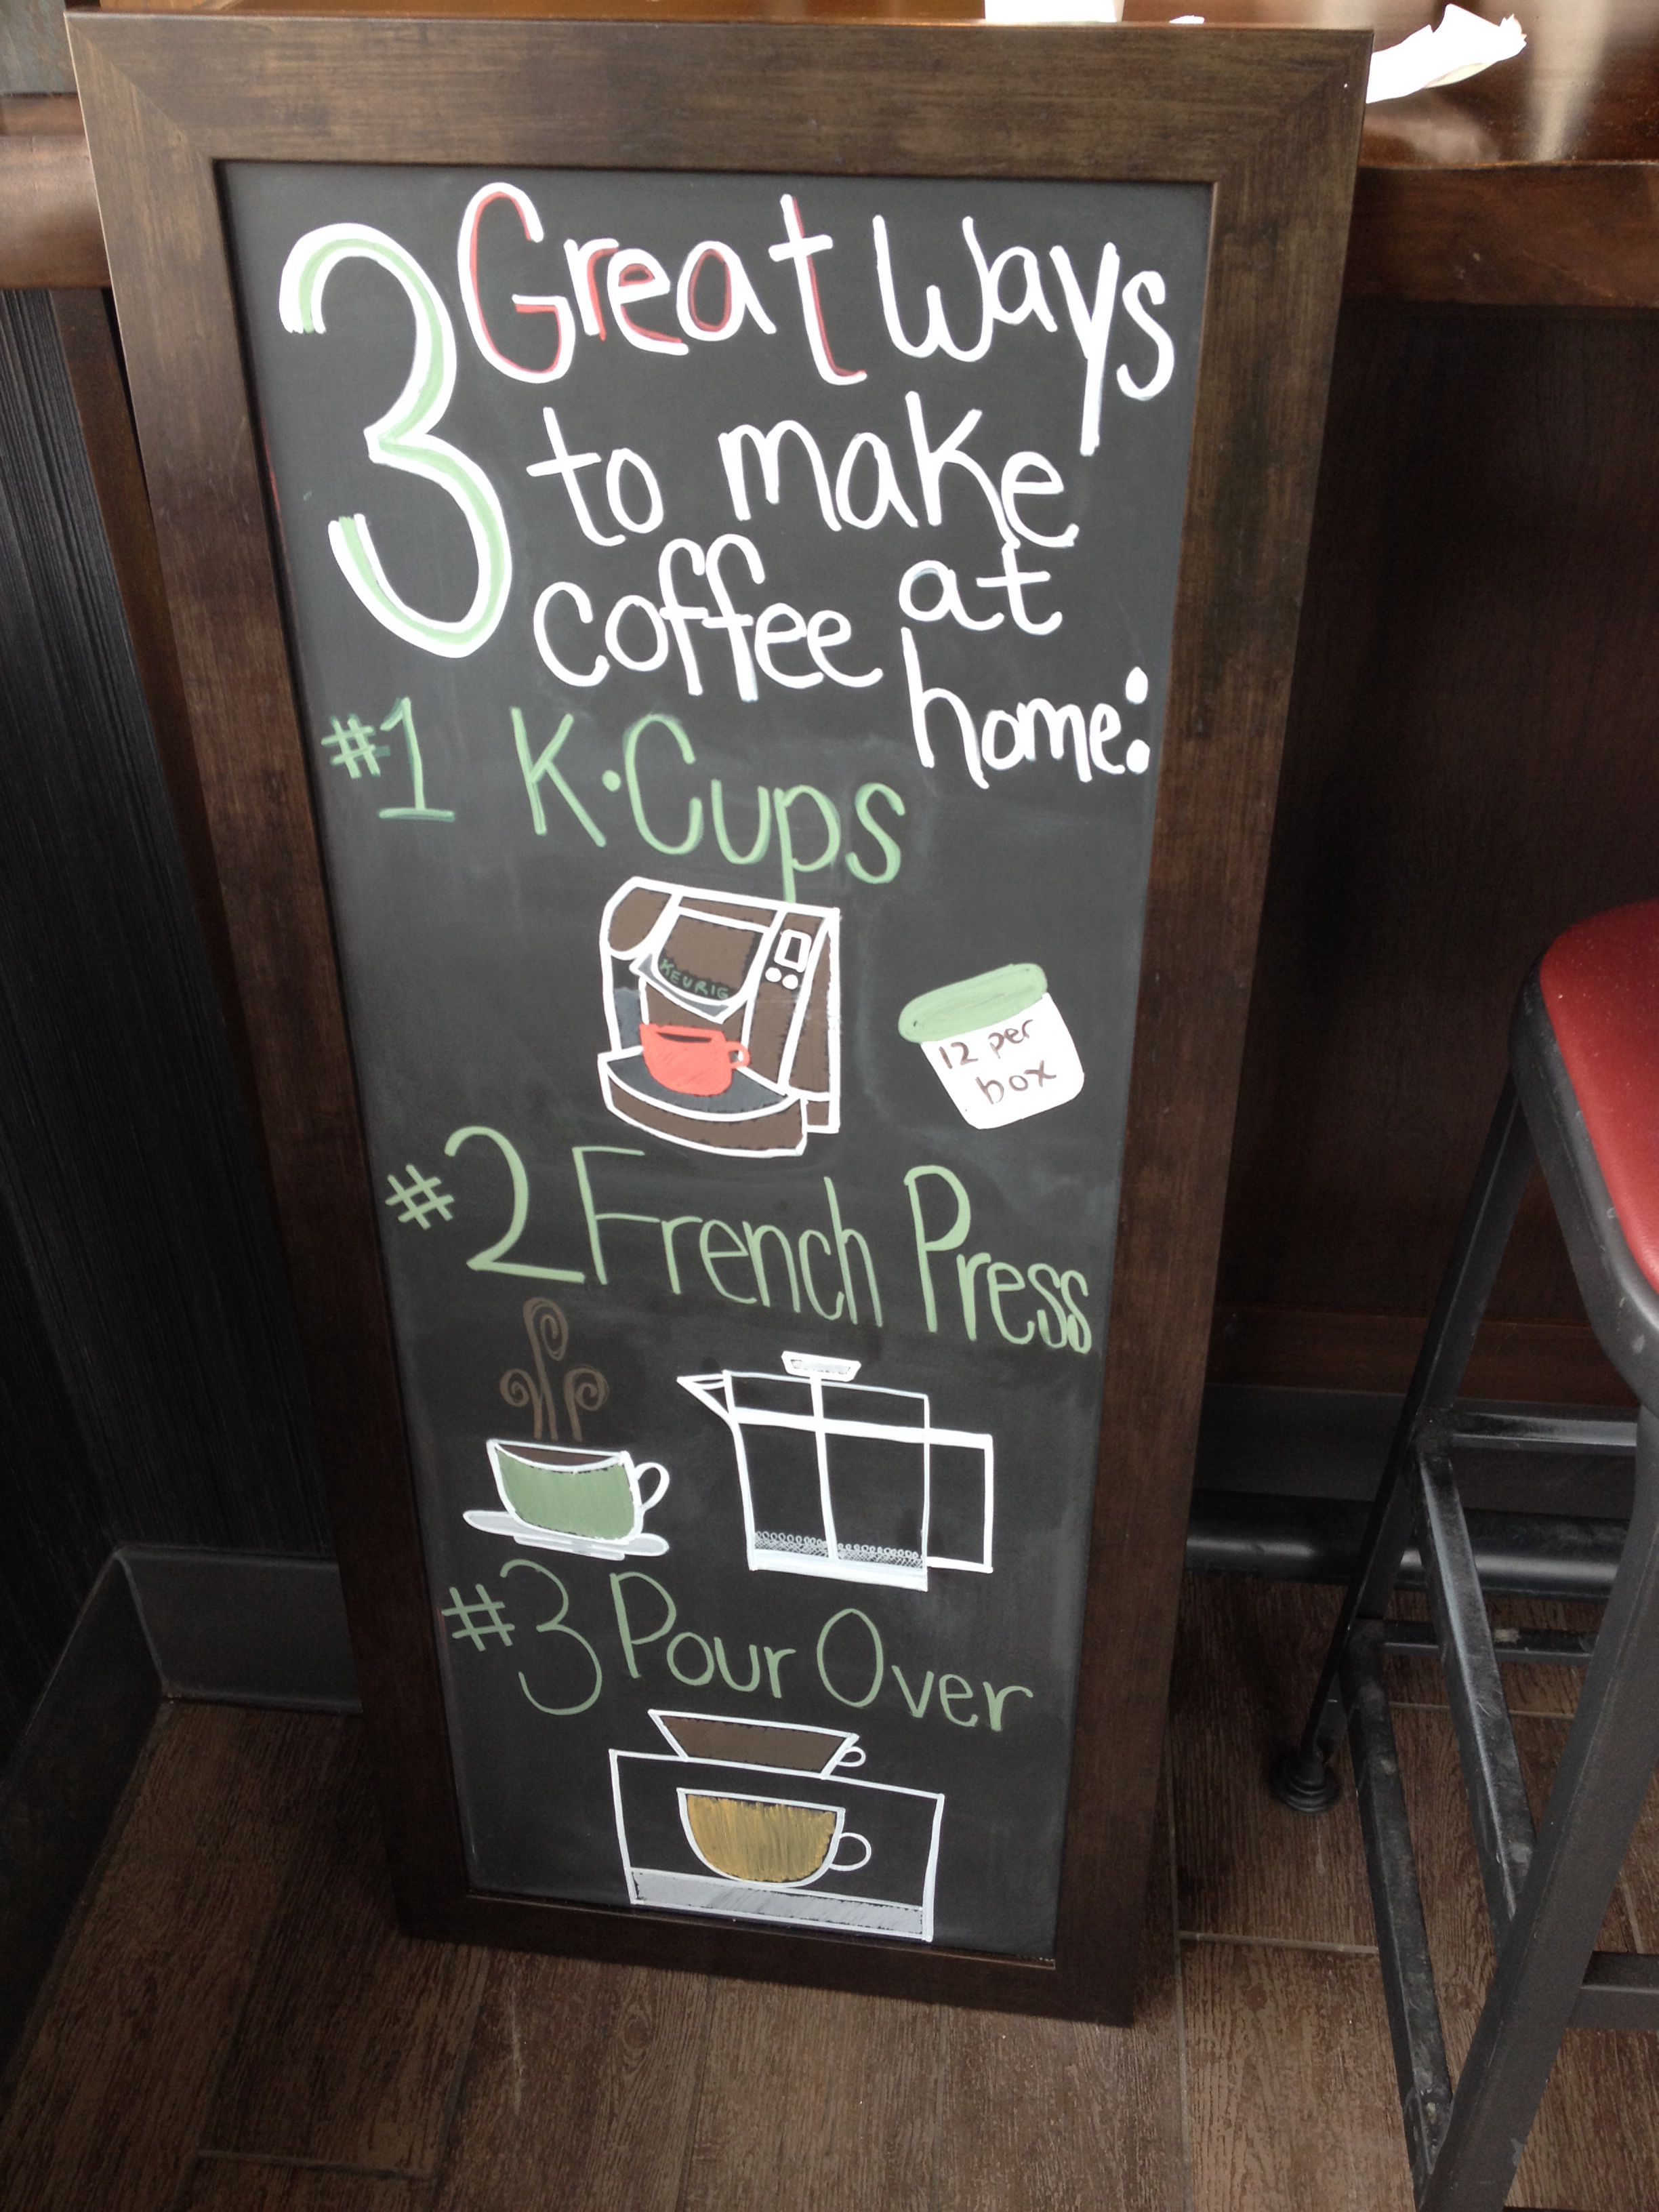 3 Ways To Make Great Coffee At Home Chalkboard Art Coffee Starbucks Keurig French Press Kcup Pour Over Coffee Chalkboard Chalkboard Art Starbucks